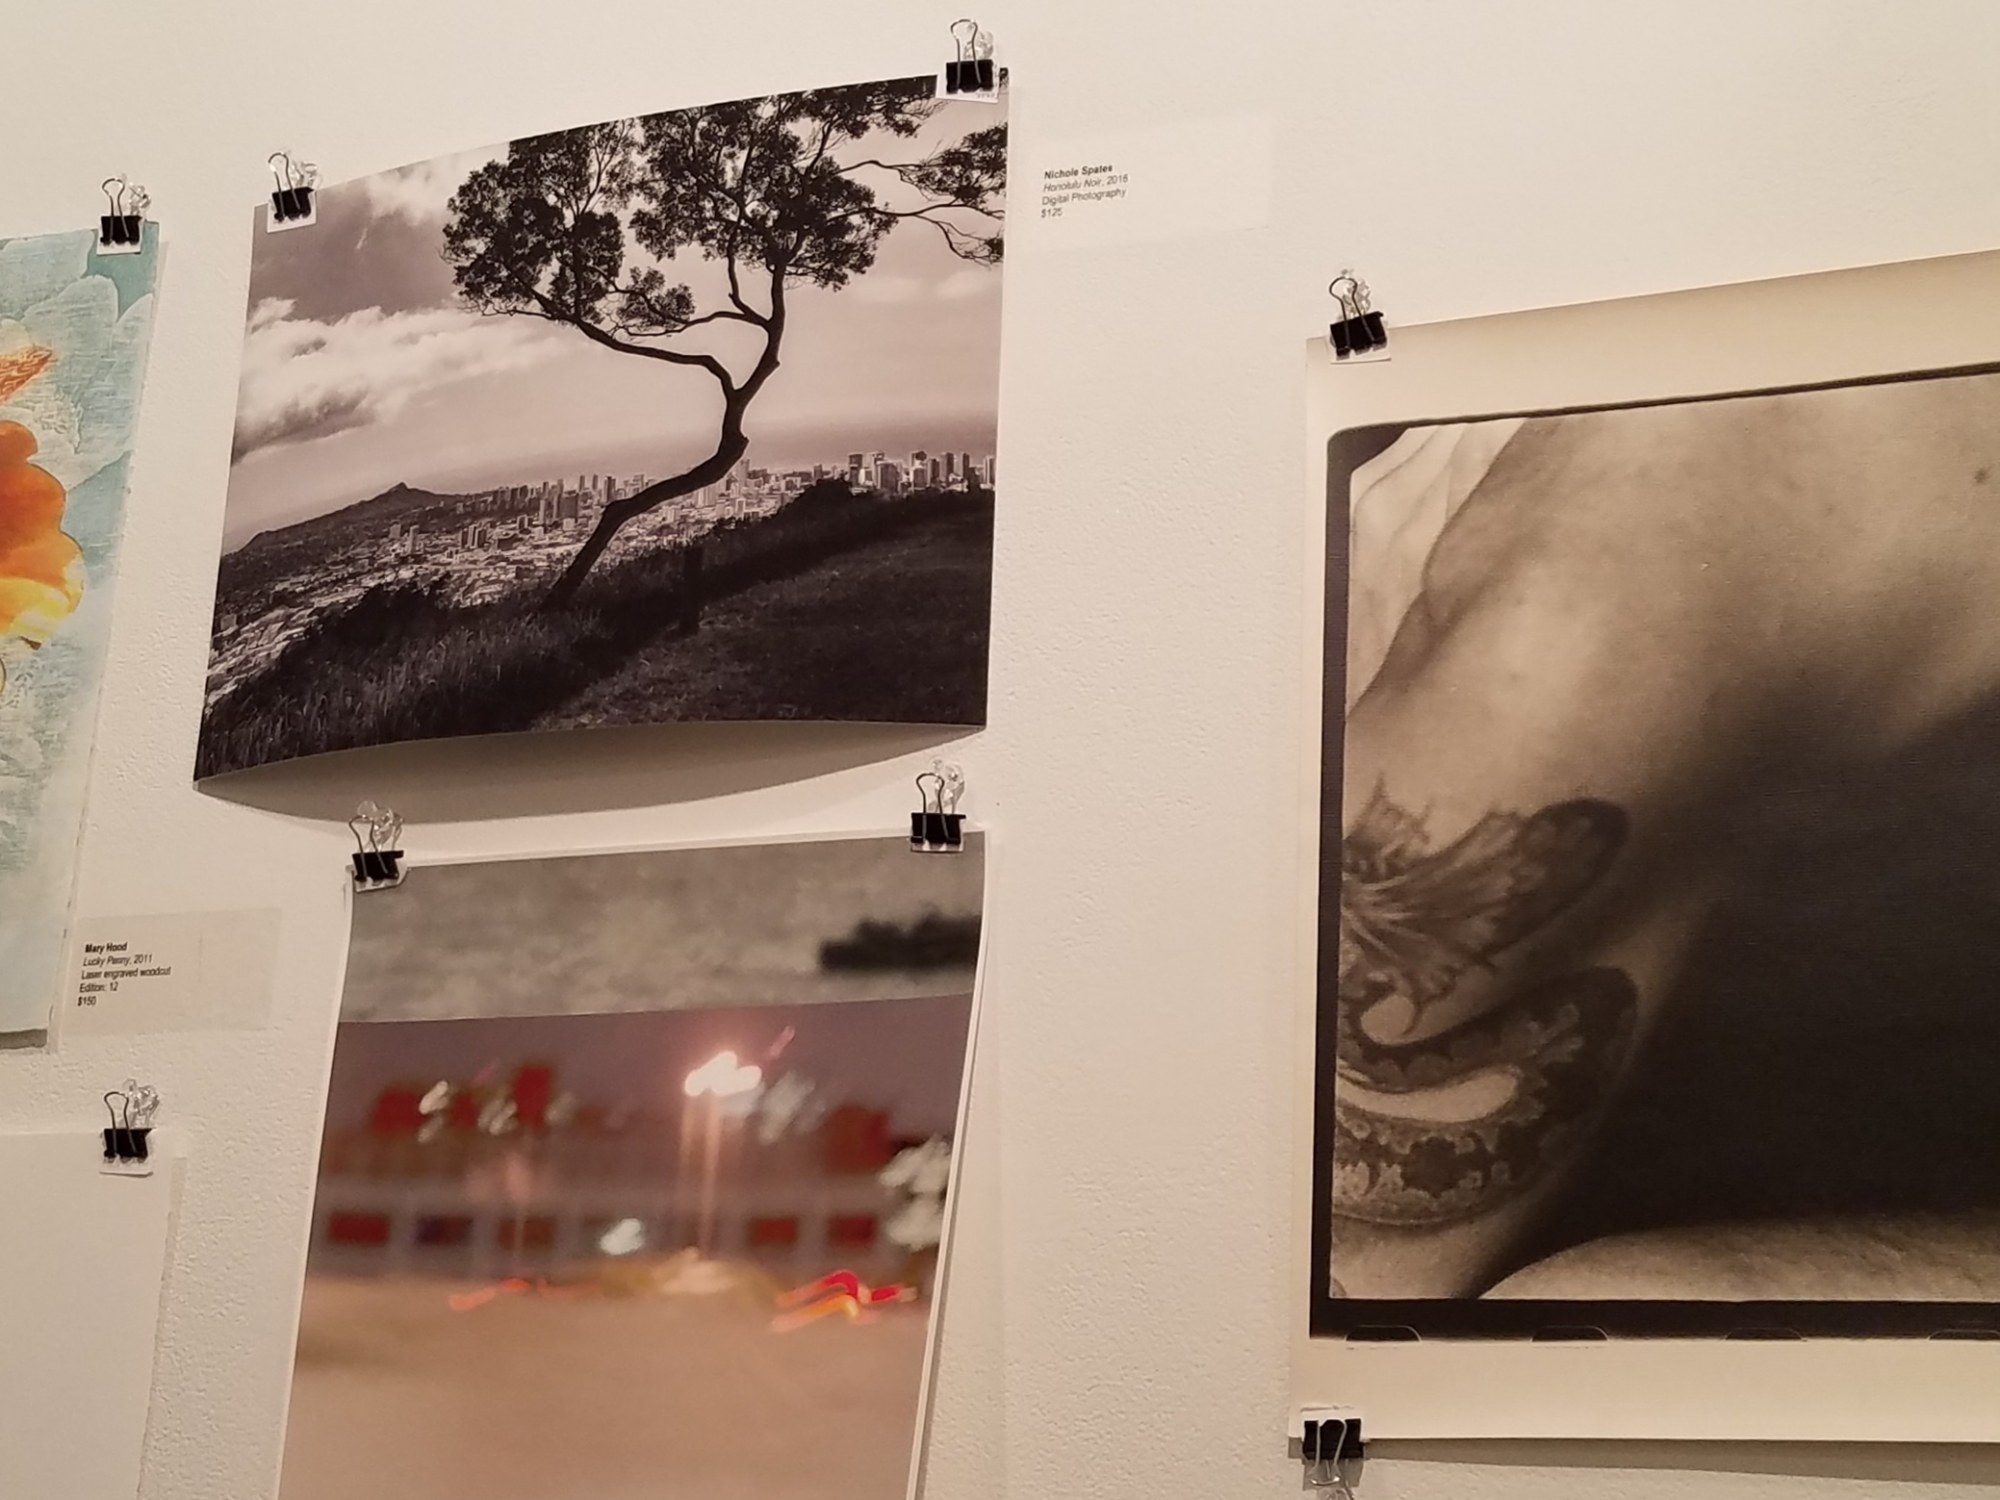 Honolulu Noir shown at Planthouse Gallery Charity Art Sale, January 2019 photo by LensMomentsNS - Nichole Spates